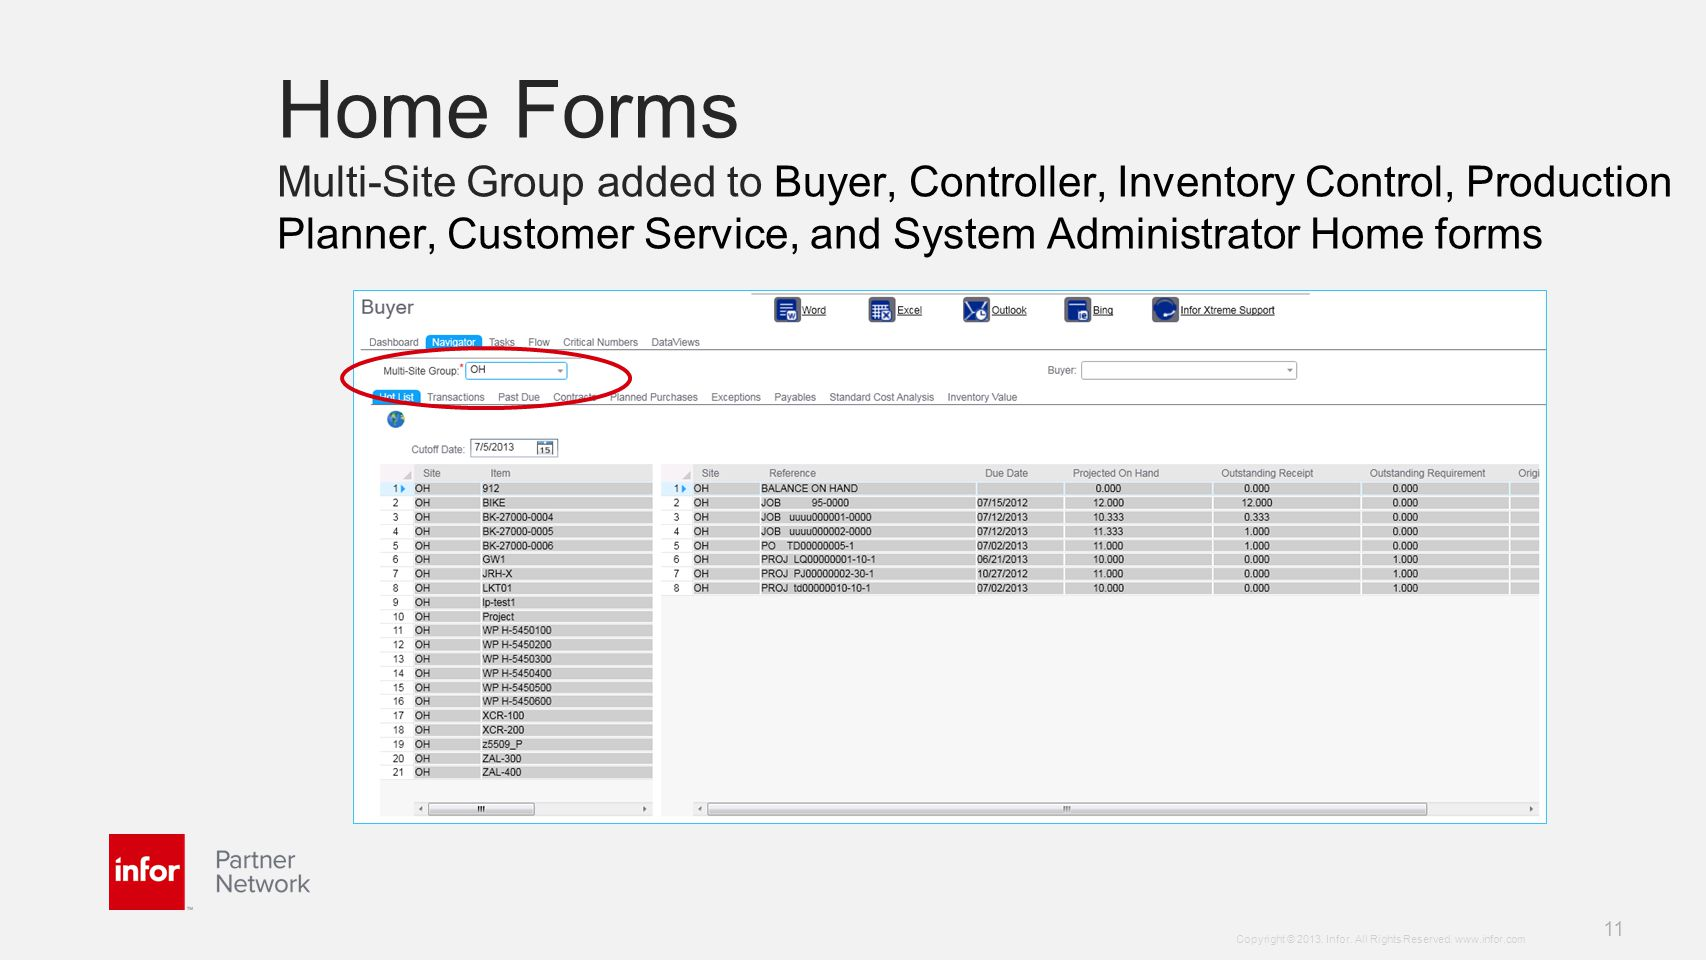 Home Forms Multi-Site Group added to Buyer, Controller, Inventory Control, Production Planner, Customer Service, and System Administrator Home forms